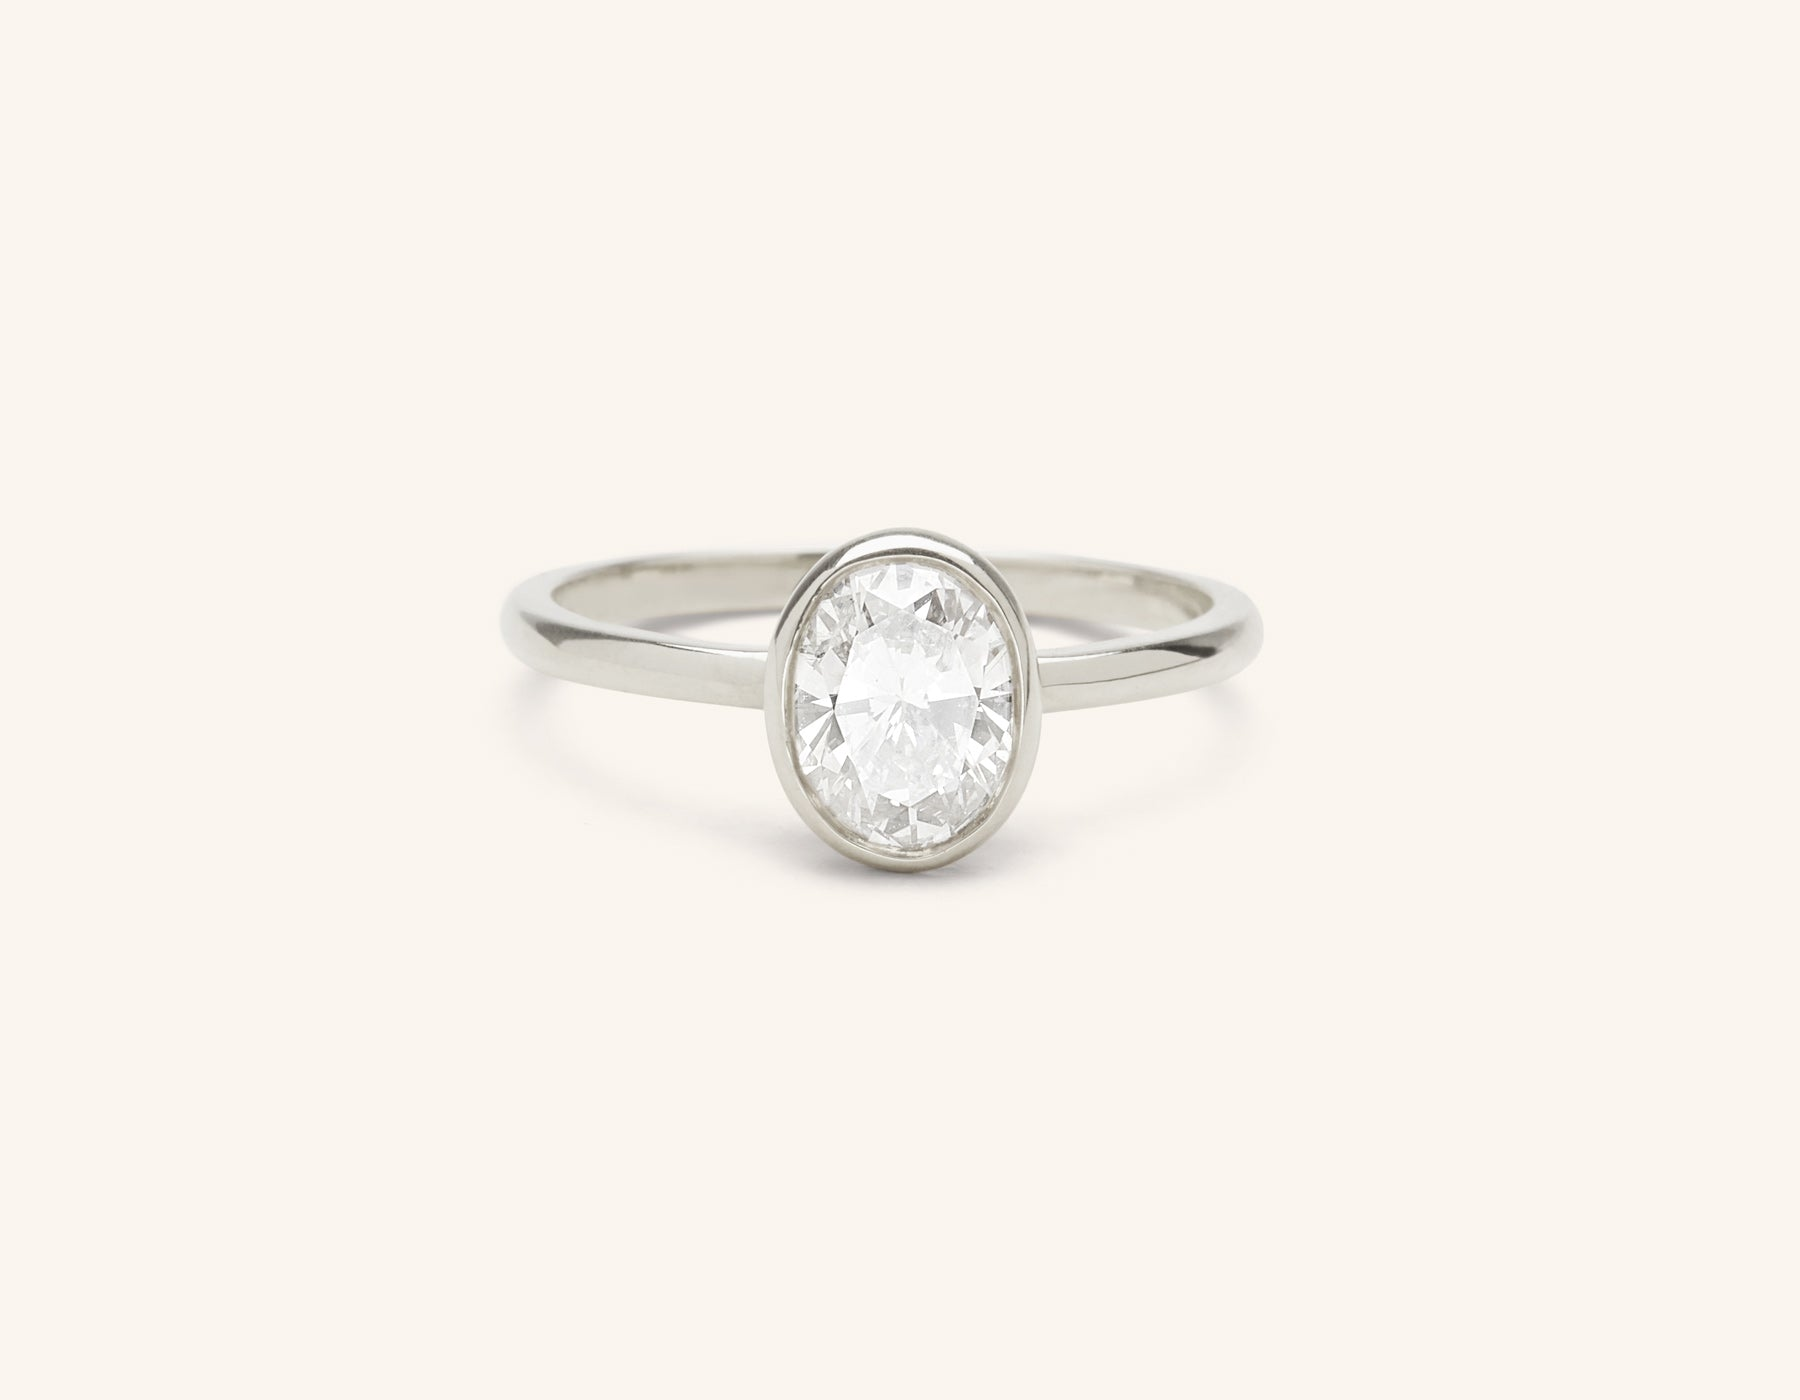 Minimalist platinum Oval Bezel engagement ring 1 ct diamond Vrai and Oro